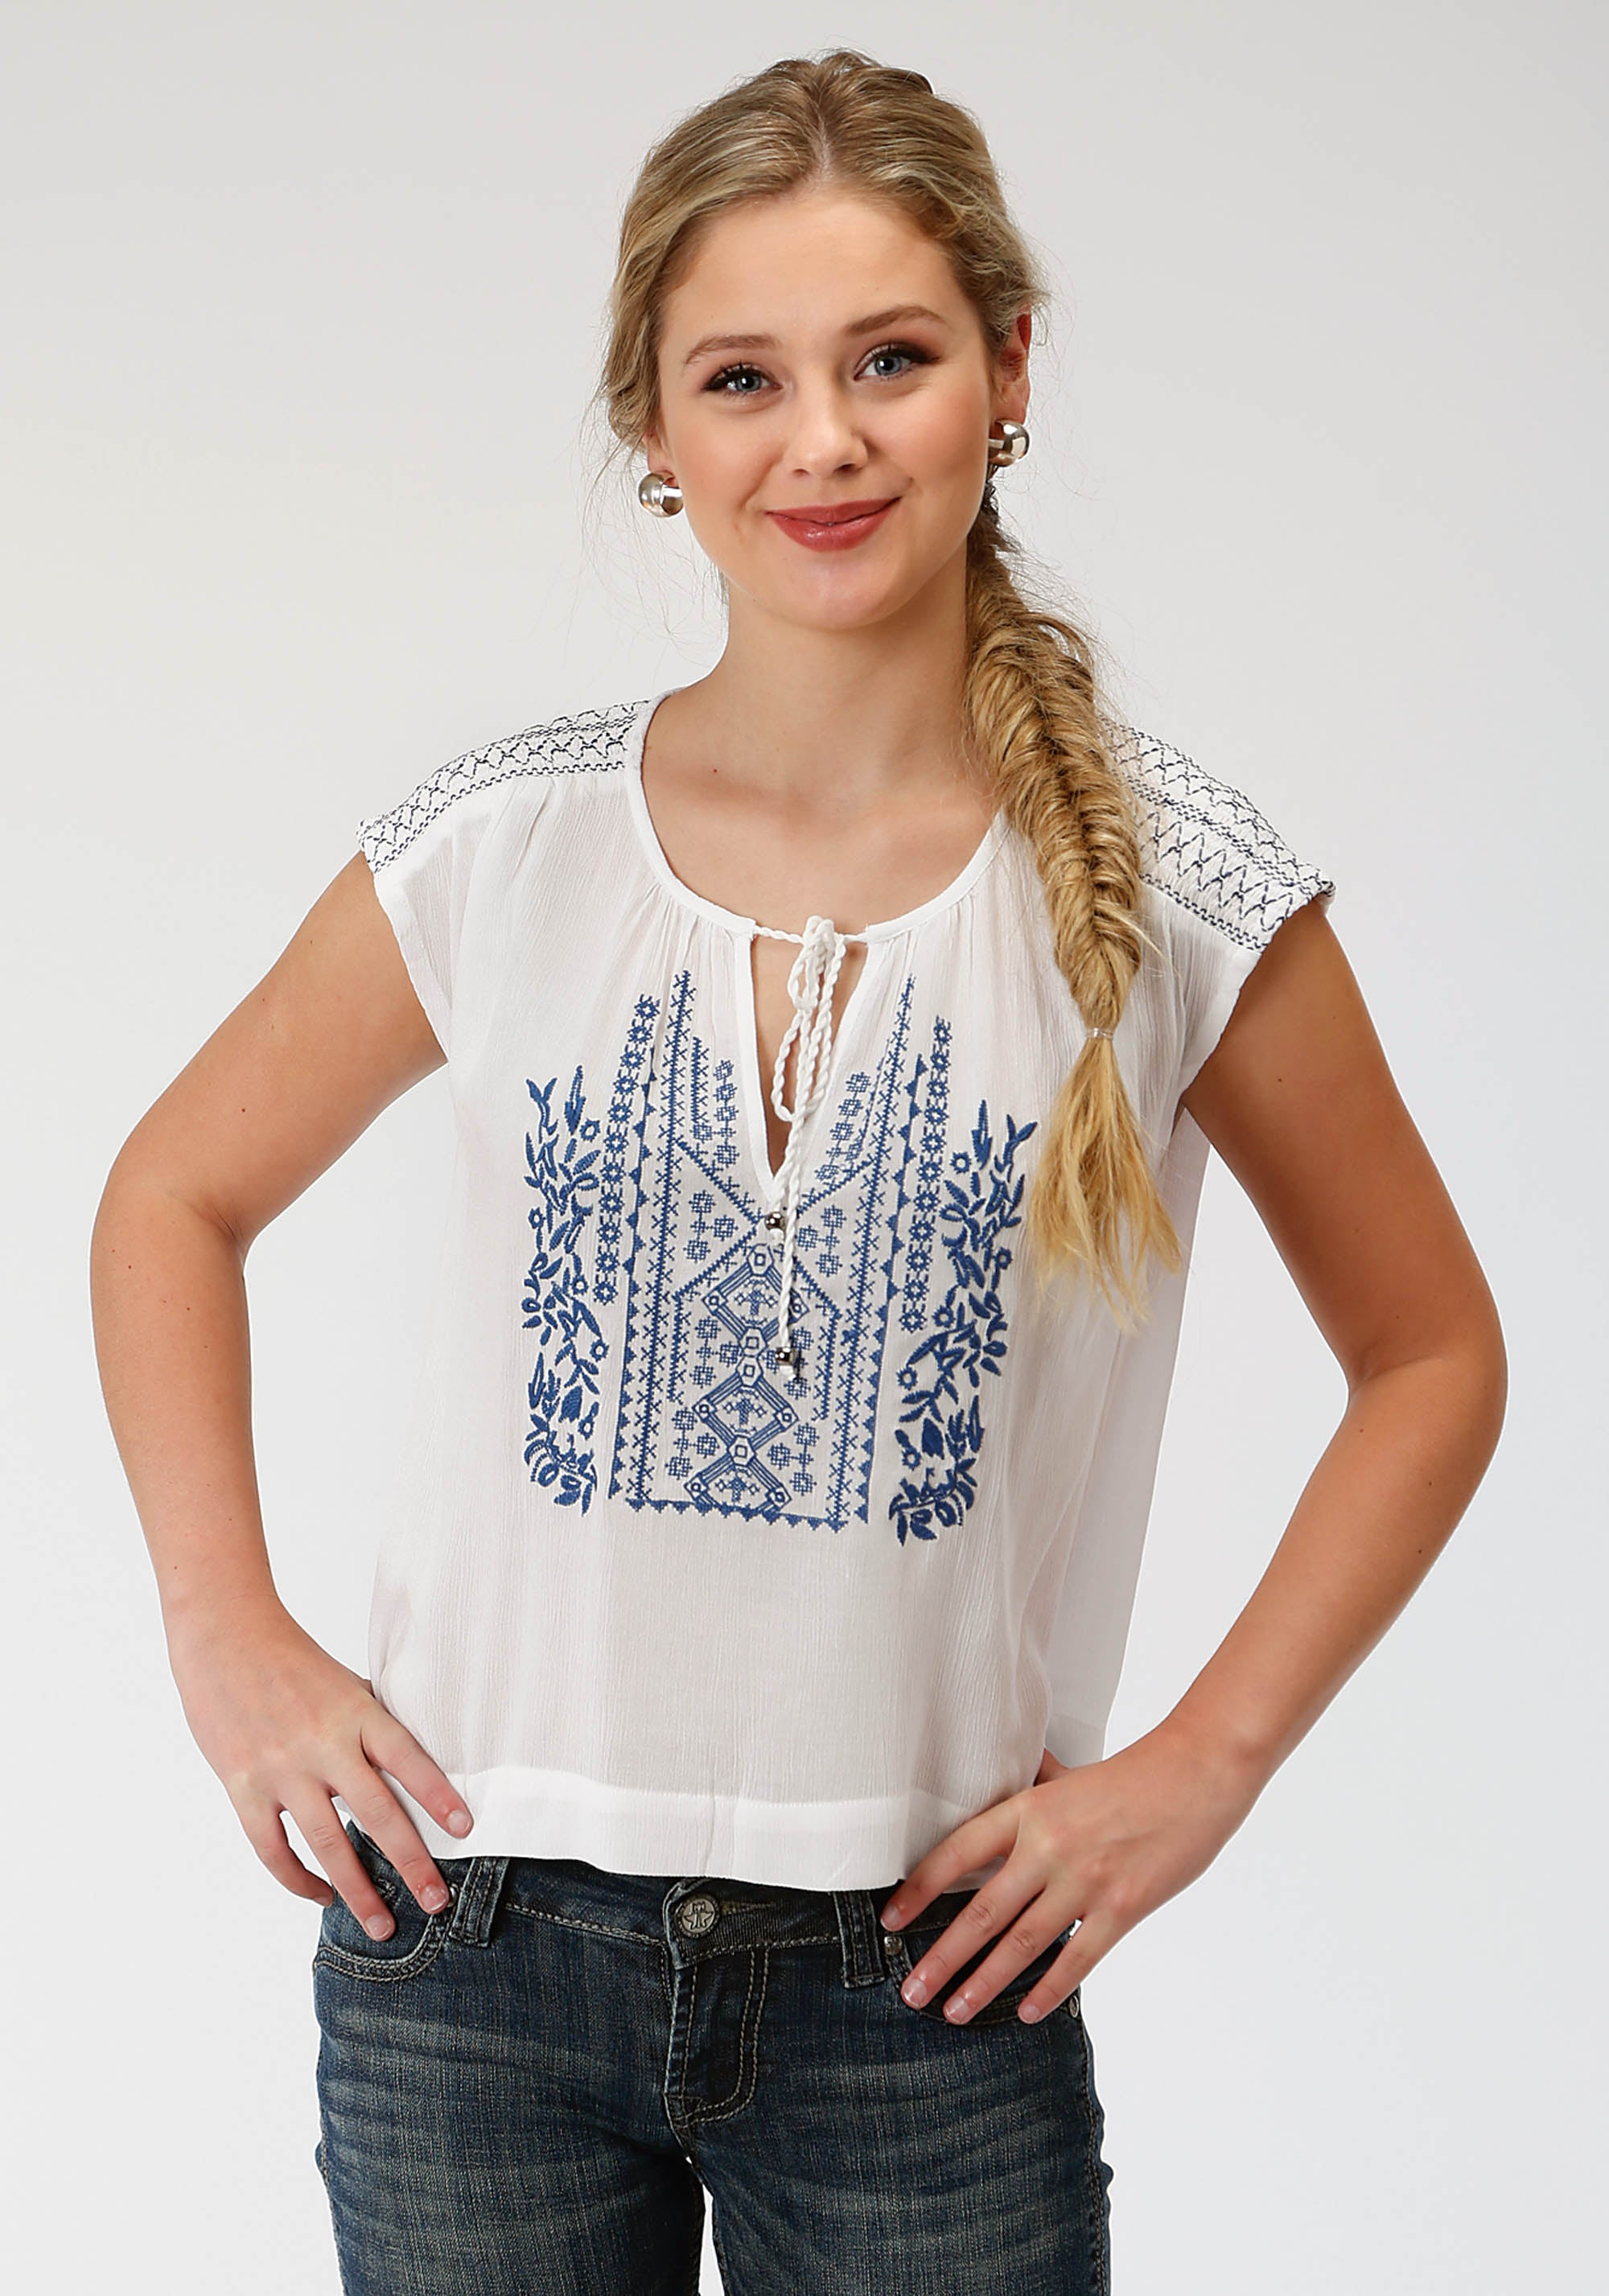 ROPER WOMENS WHITE 9317 BLENDED CREPE SS TOP FIVE STAR COLLECTION- SUMMER II SHORT SLEEVE